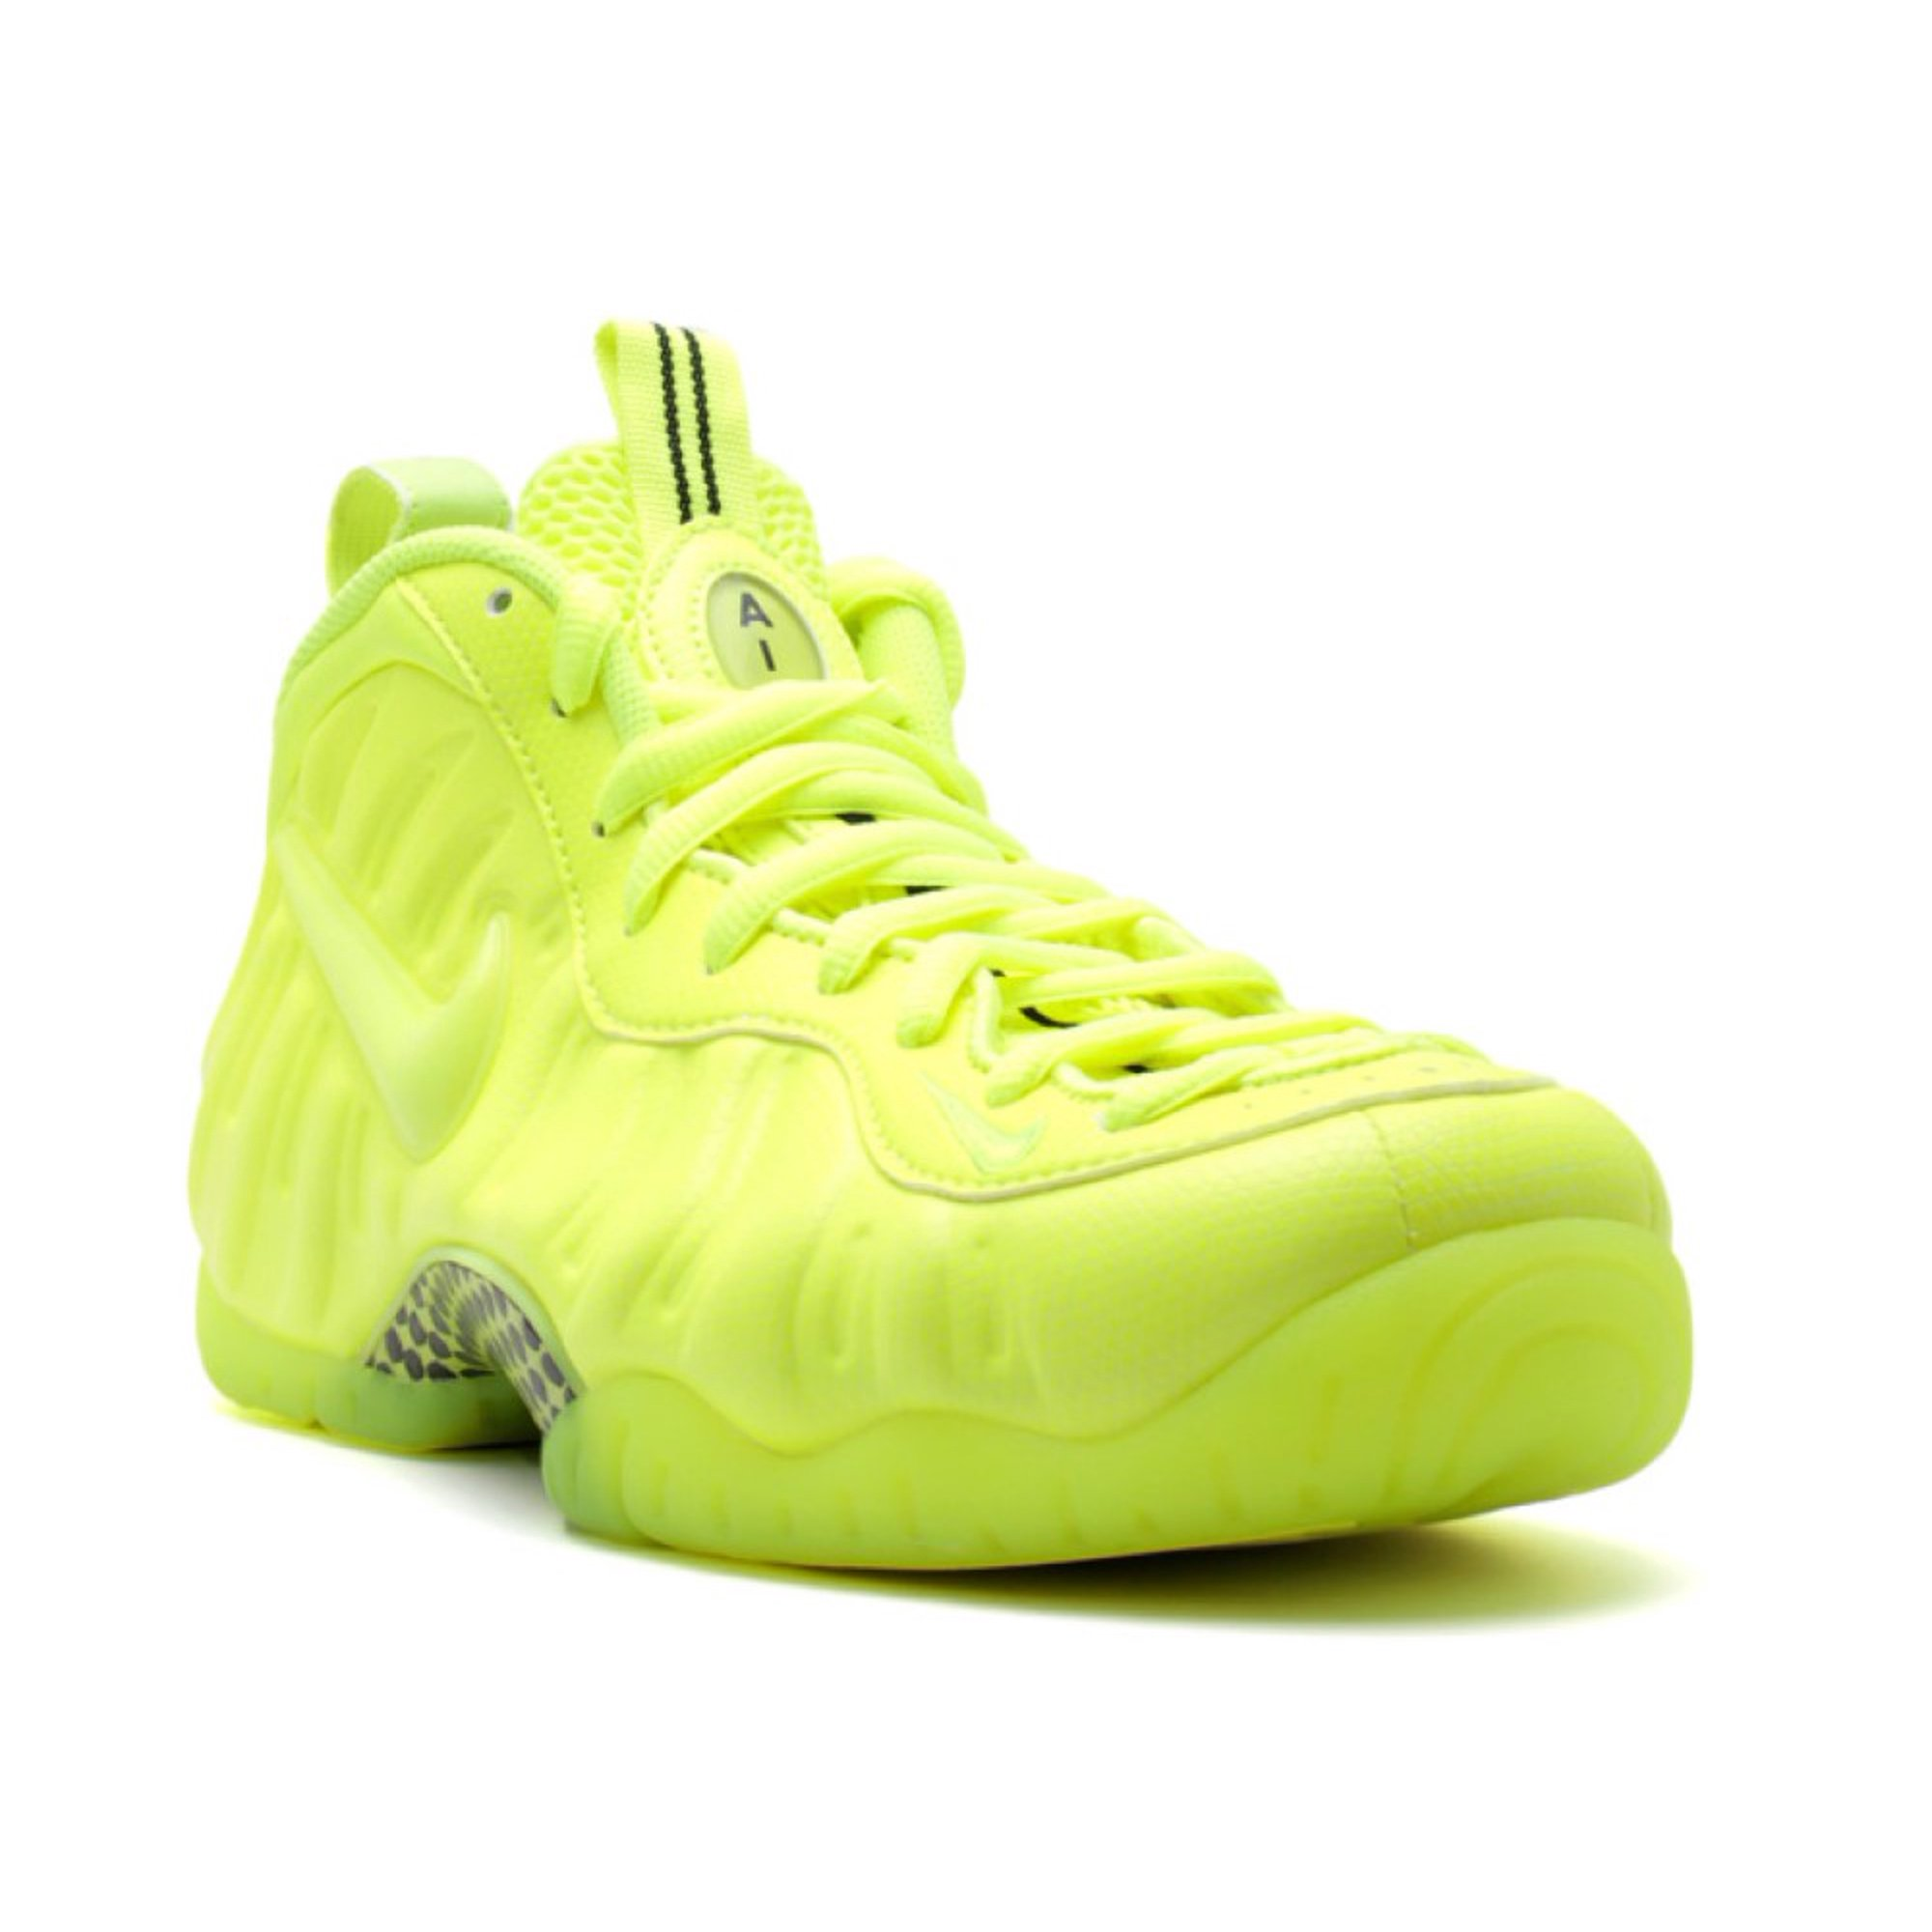 superior quality b0f6a 4d283 Nike - Men - Air Foamposite Pro 'Volt' - 624041-700 - Size 9